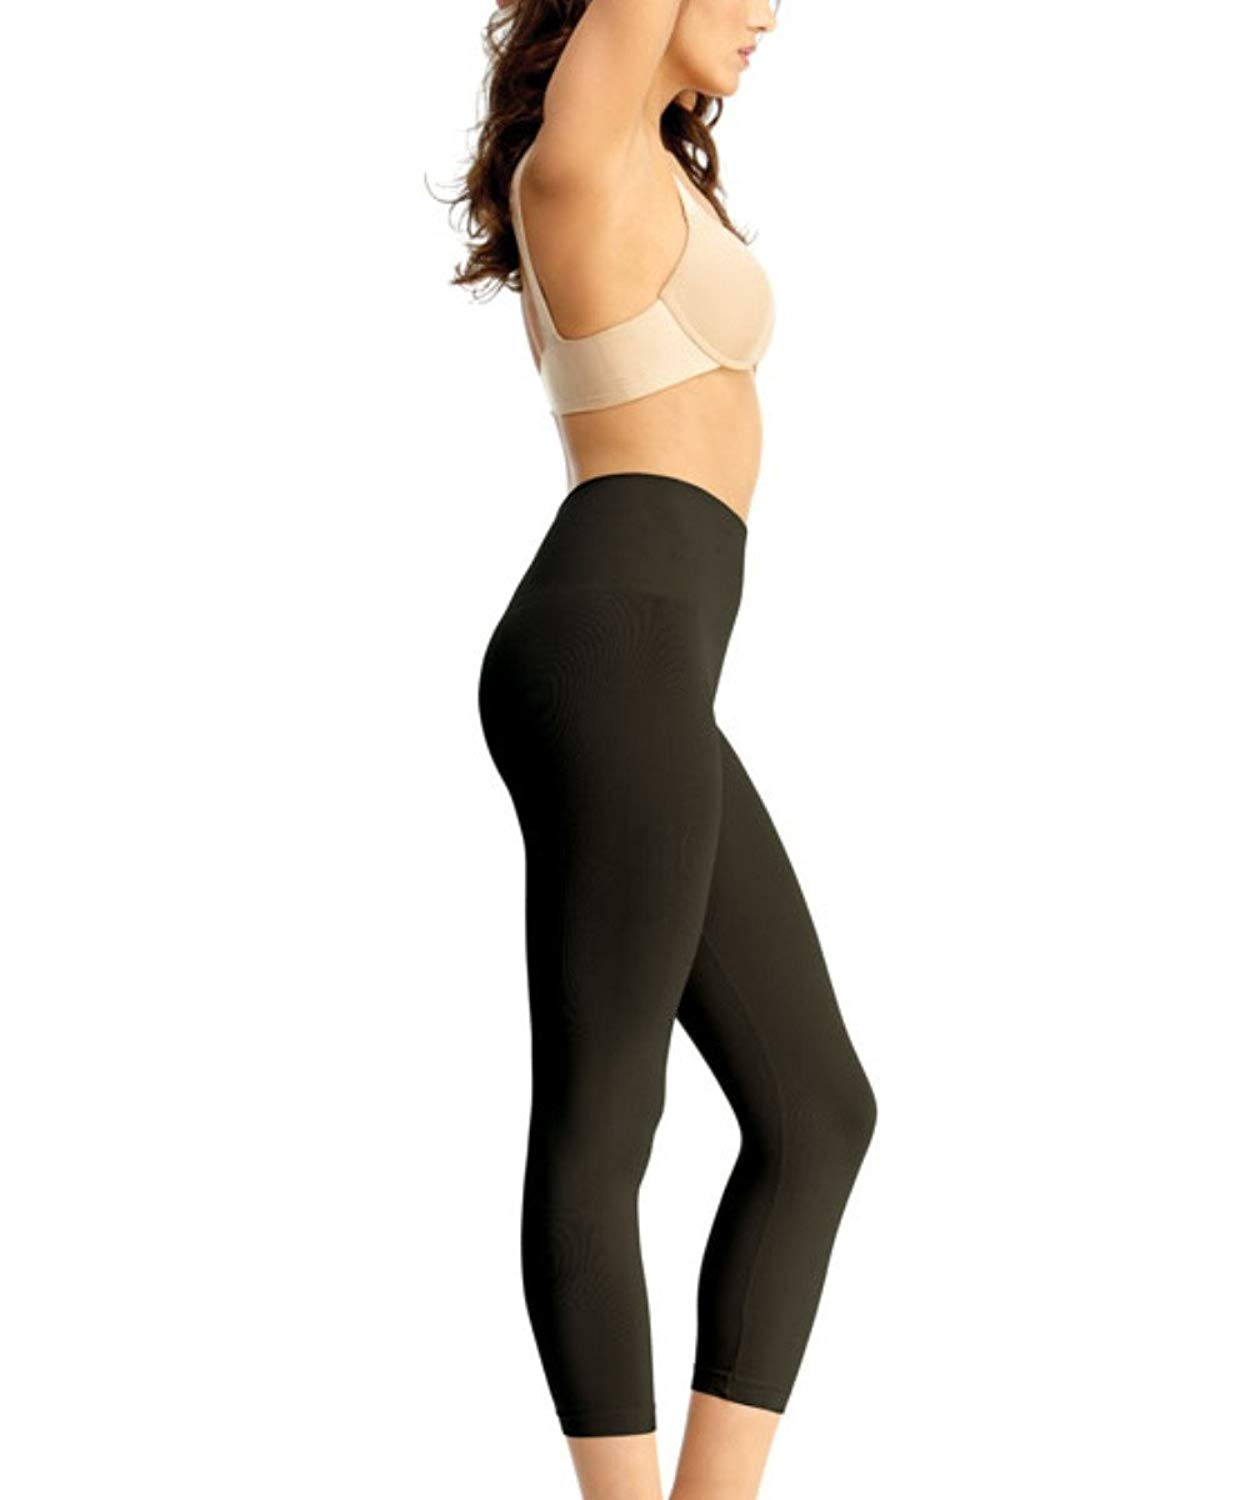 bcfe54a5d8 Get Quotations · SlimMe MeMoi High Waist Control Shapewear Leggings